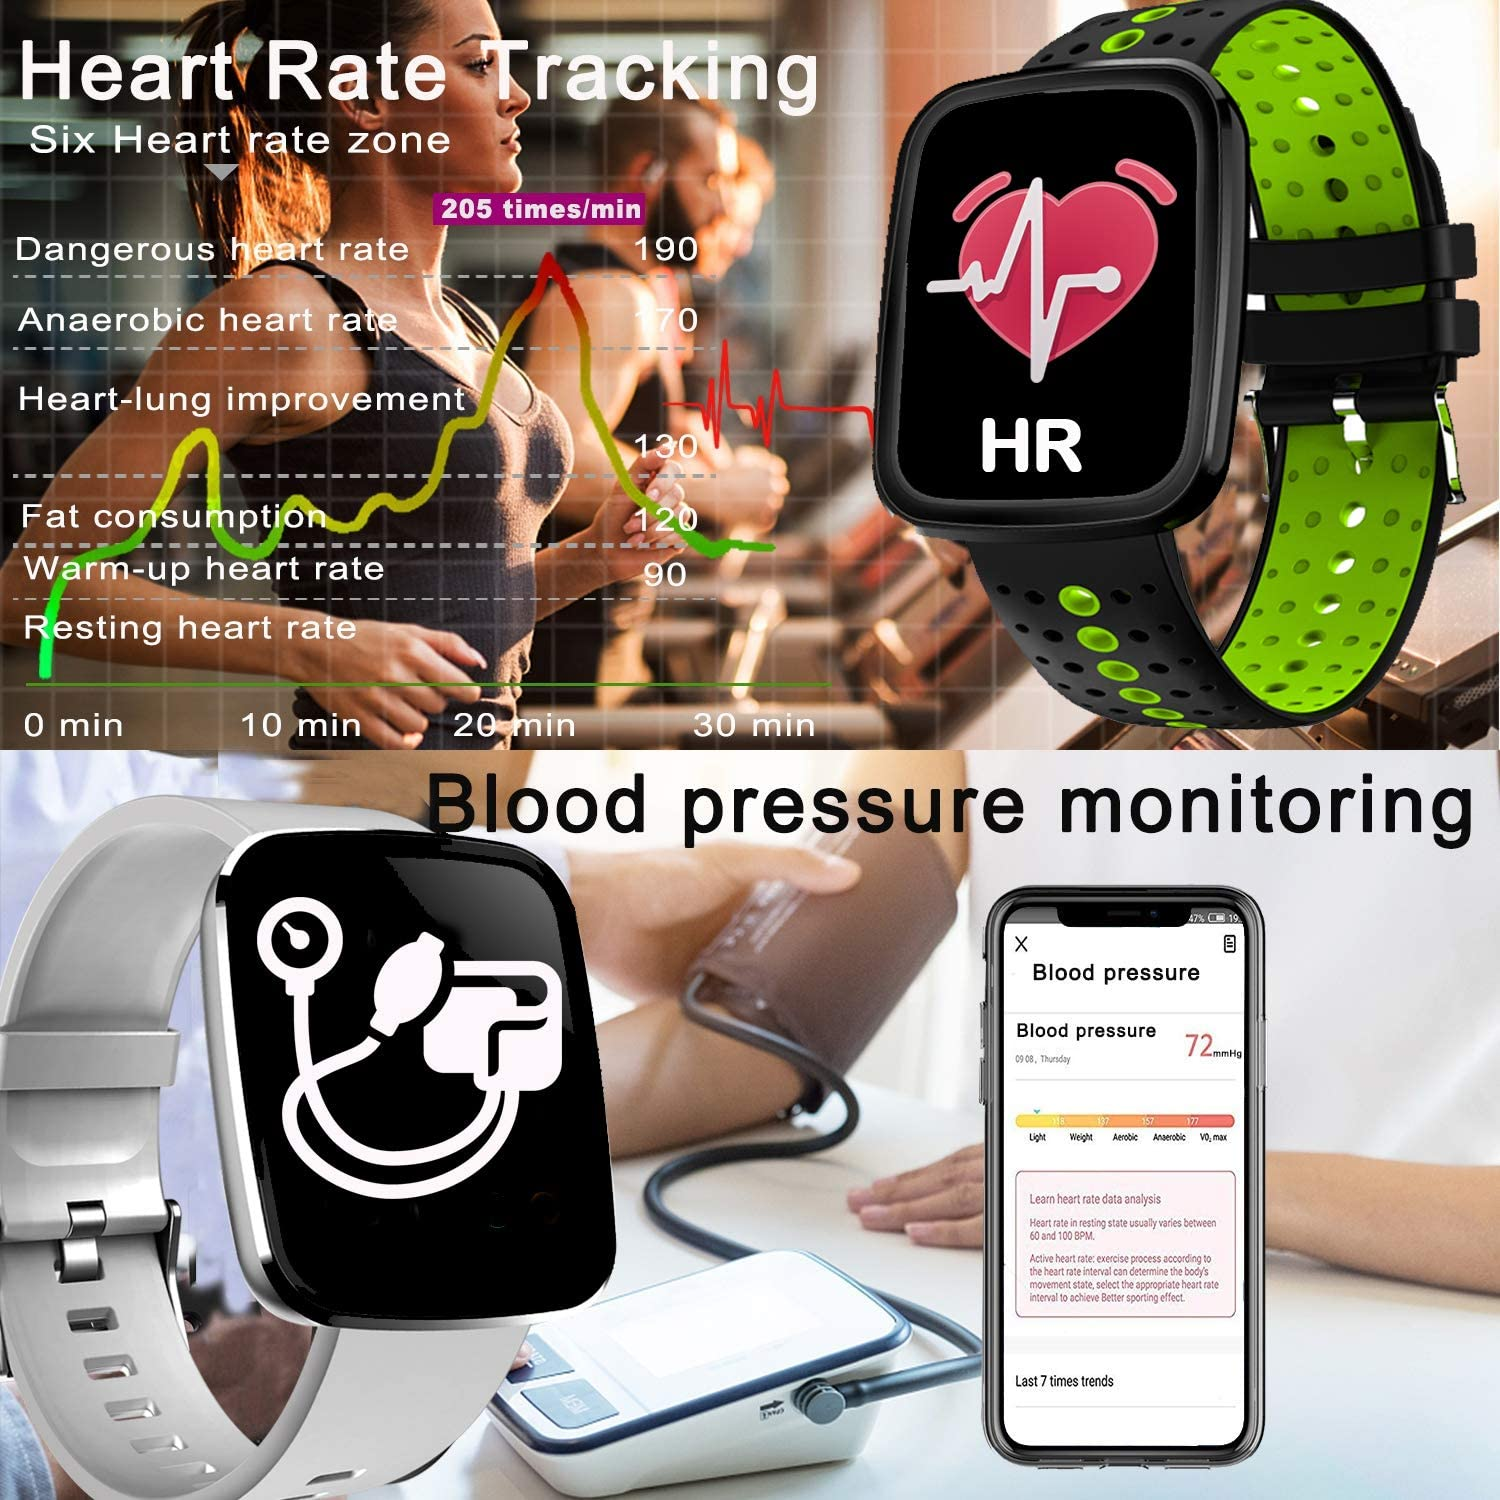 Upgrade Waterproof Smart Watch Fitness Tracker with Heart Rate Monitor Blood Pressure Watch Men Women Birthday Electronic Gifts Outdoor Sport Watch Calorie Step Swim Camp Wrist Watch Sycn Android iOS